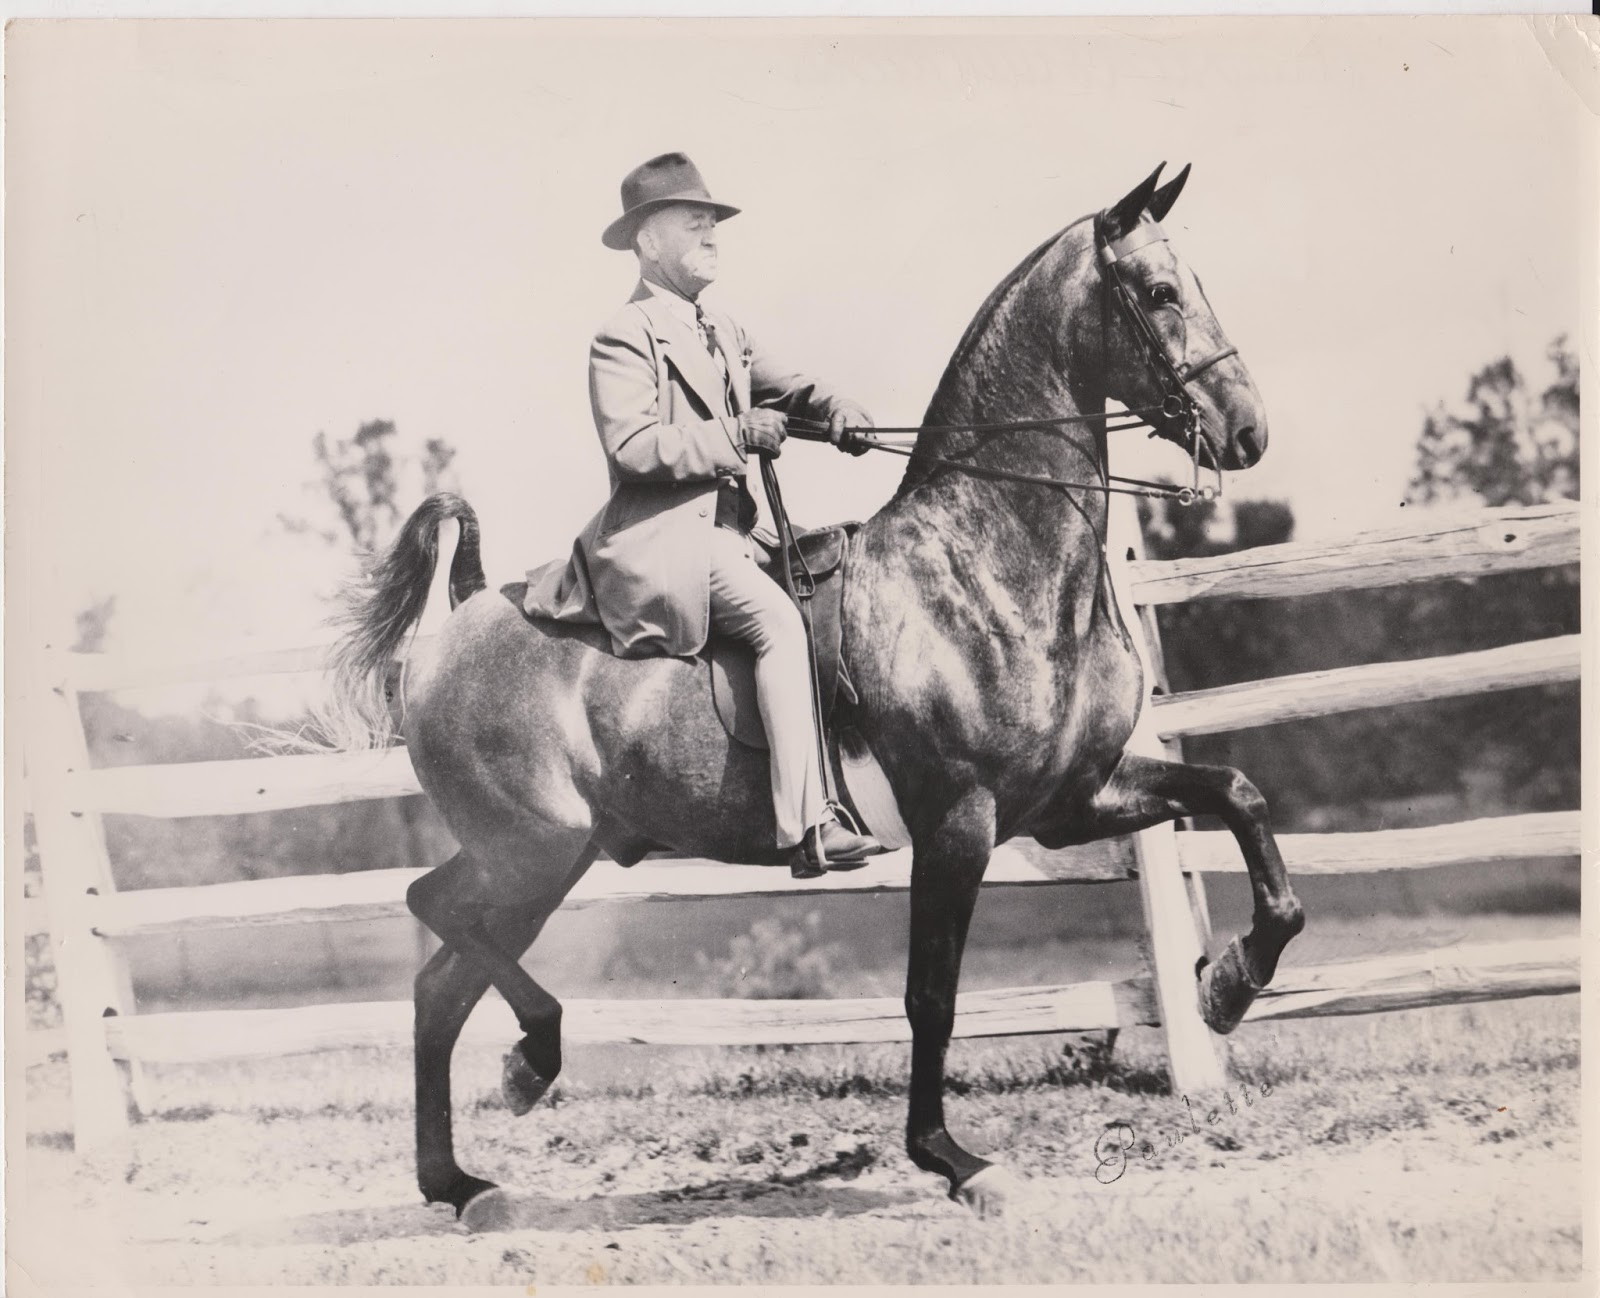 The American Saddlebred